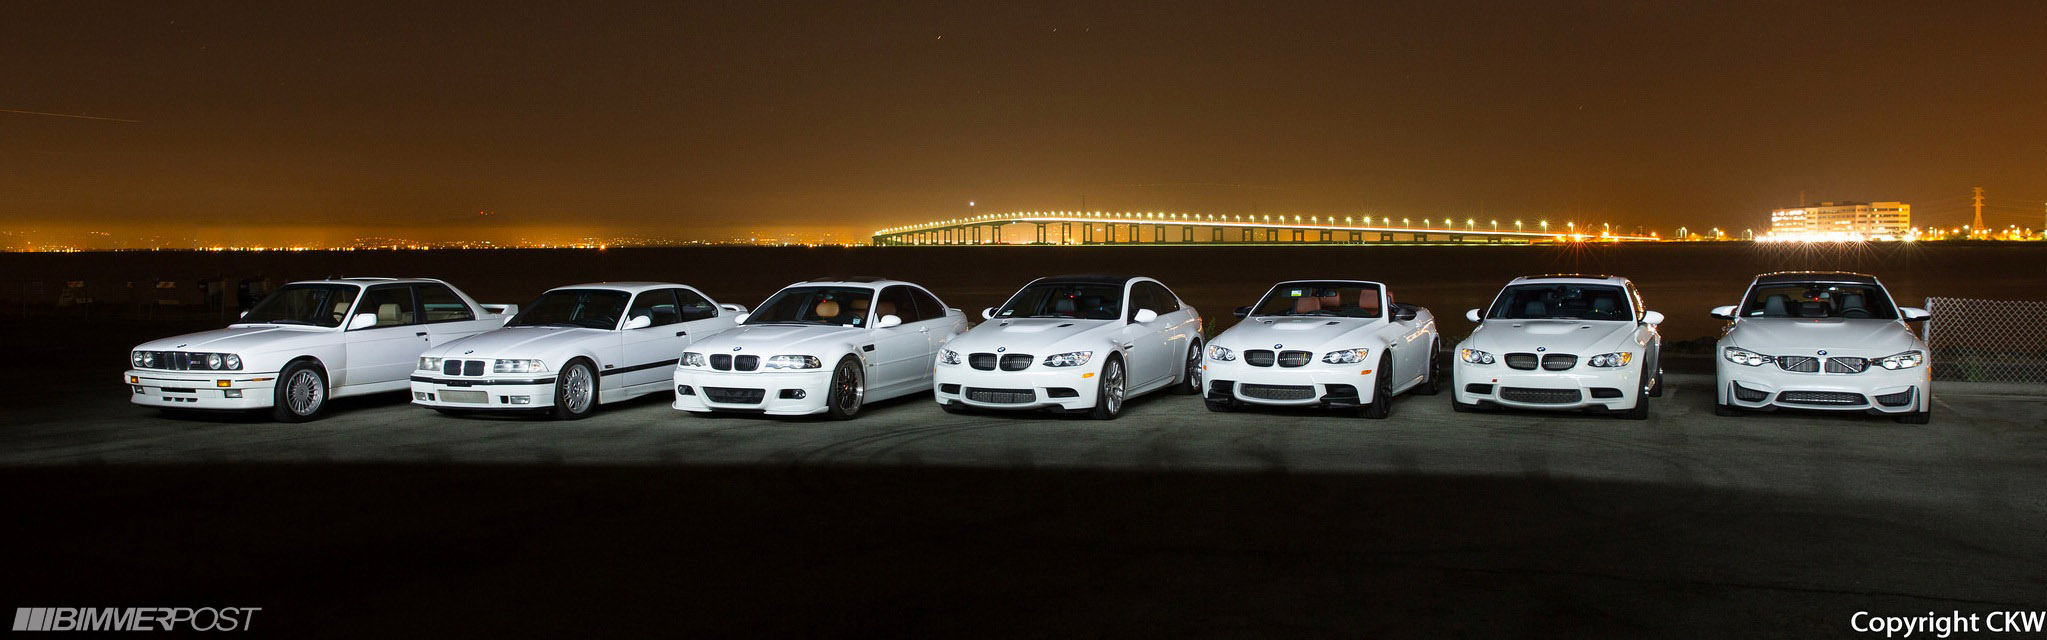 The Ultimate White M3 Photoshoot With Bonus Pic